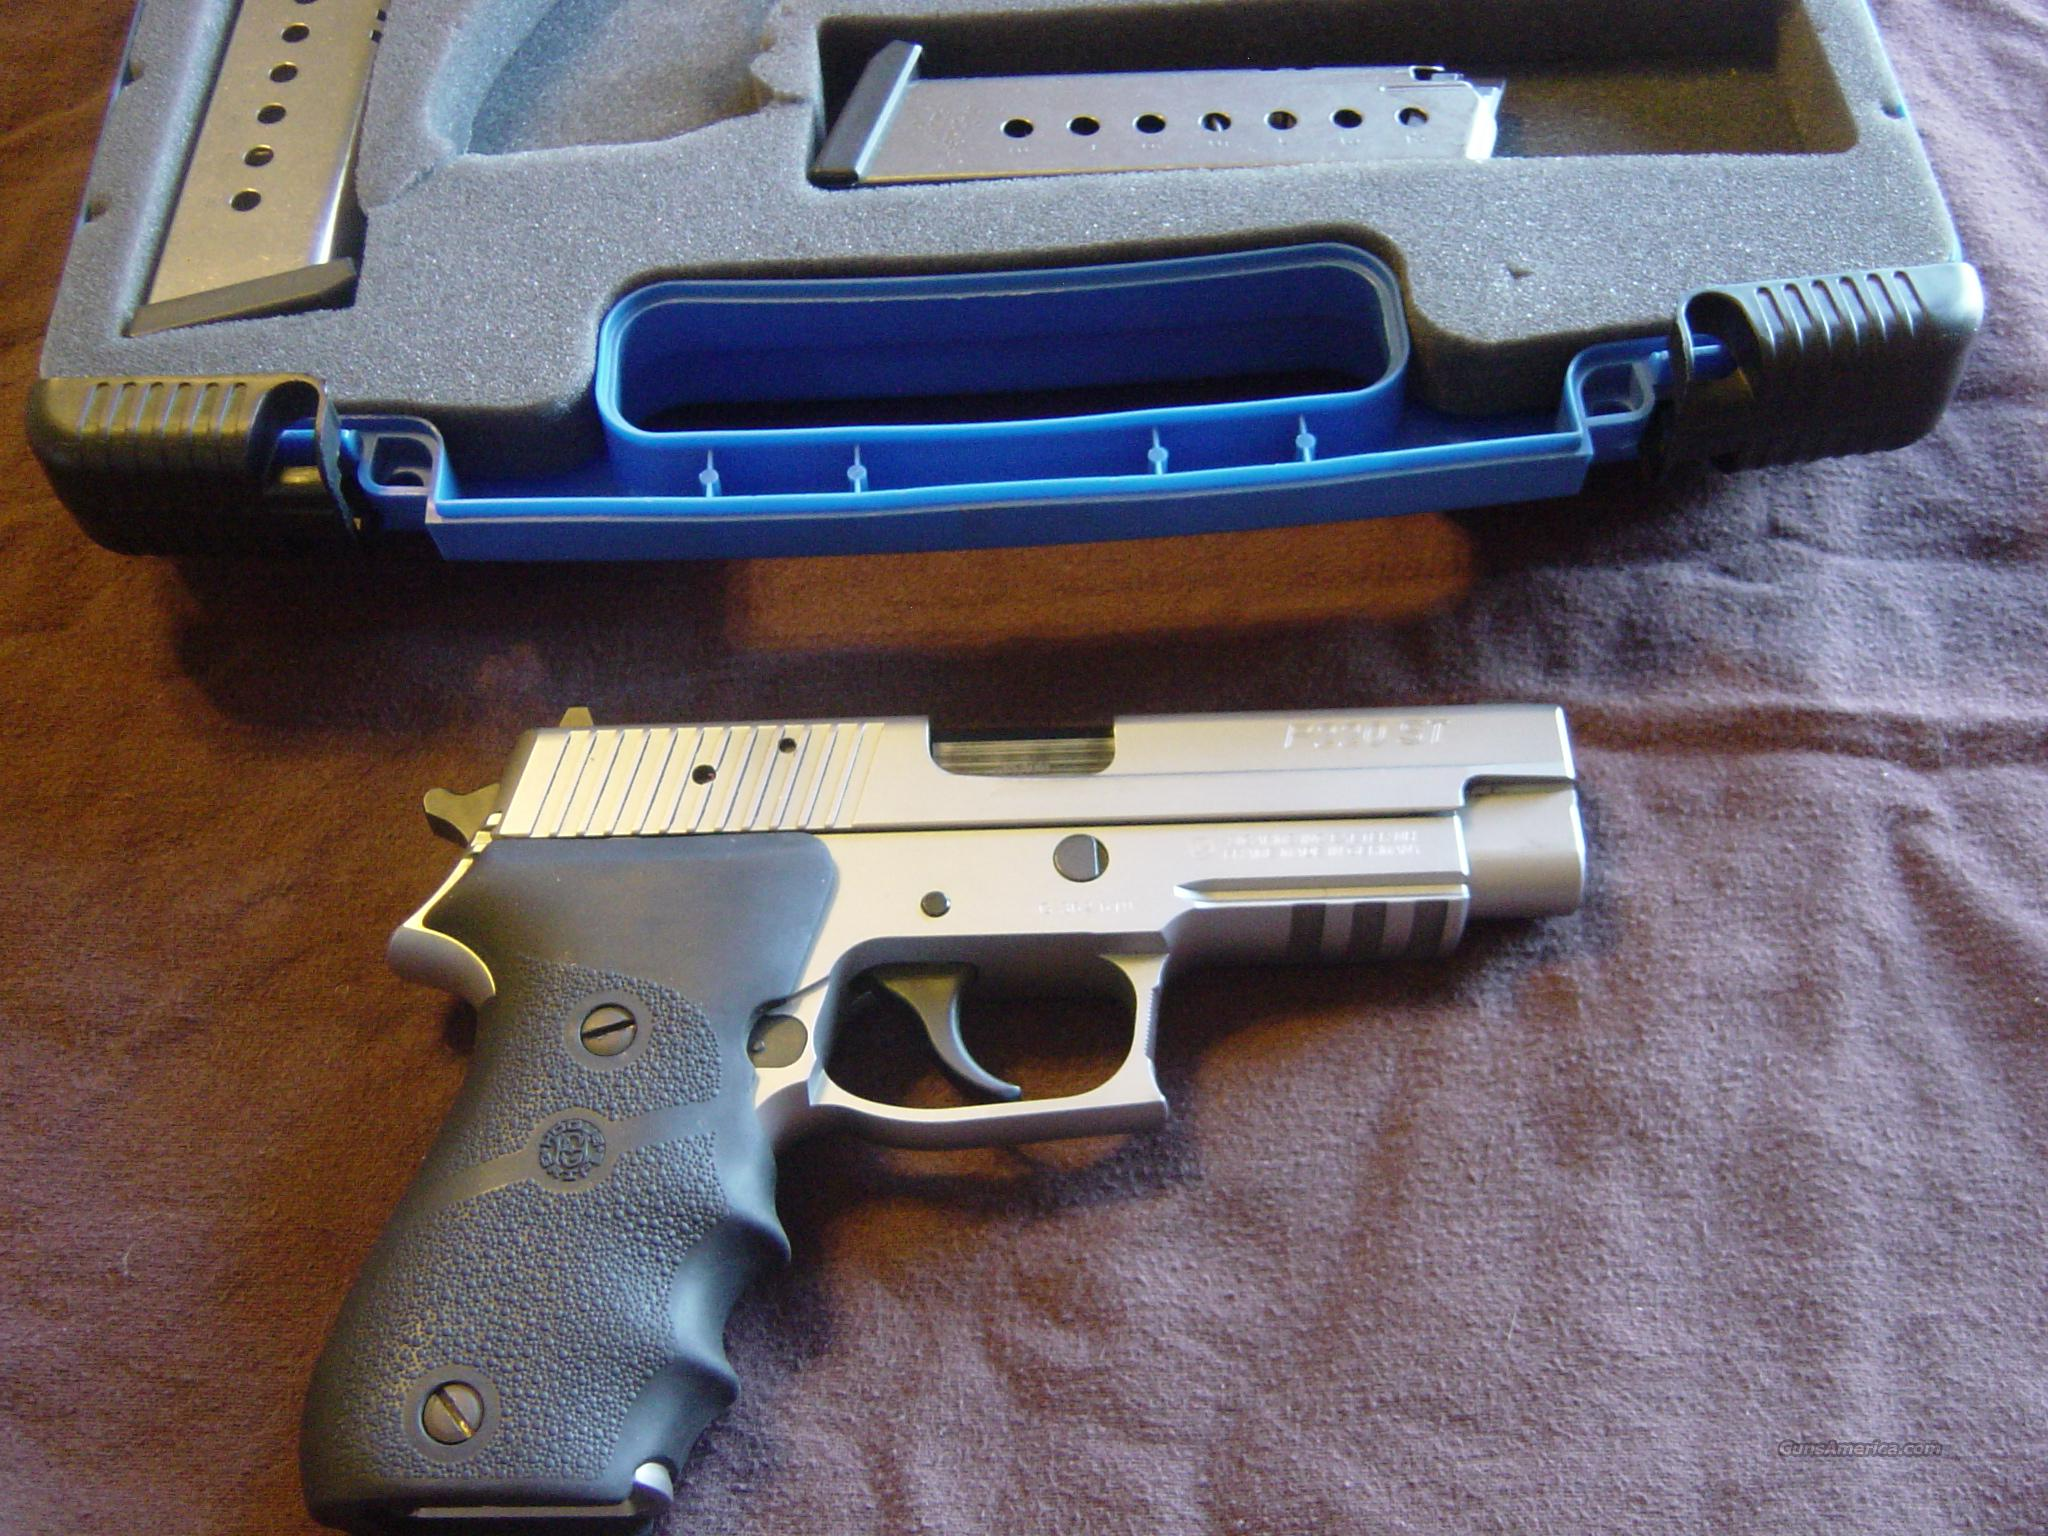 SIG SAUER P220ST Stainless REDUCED PRICE!! 45 acp AWESOME!!!!  Guns > Pistols > Sig - Sauer/Sigarms Pistols > P220